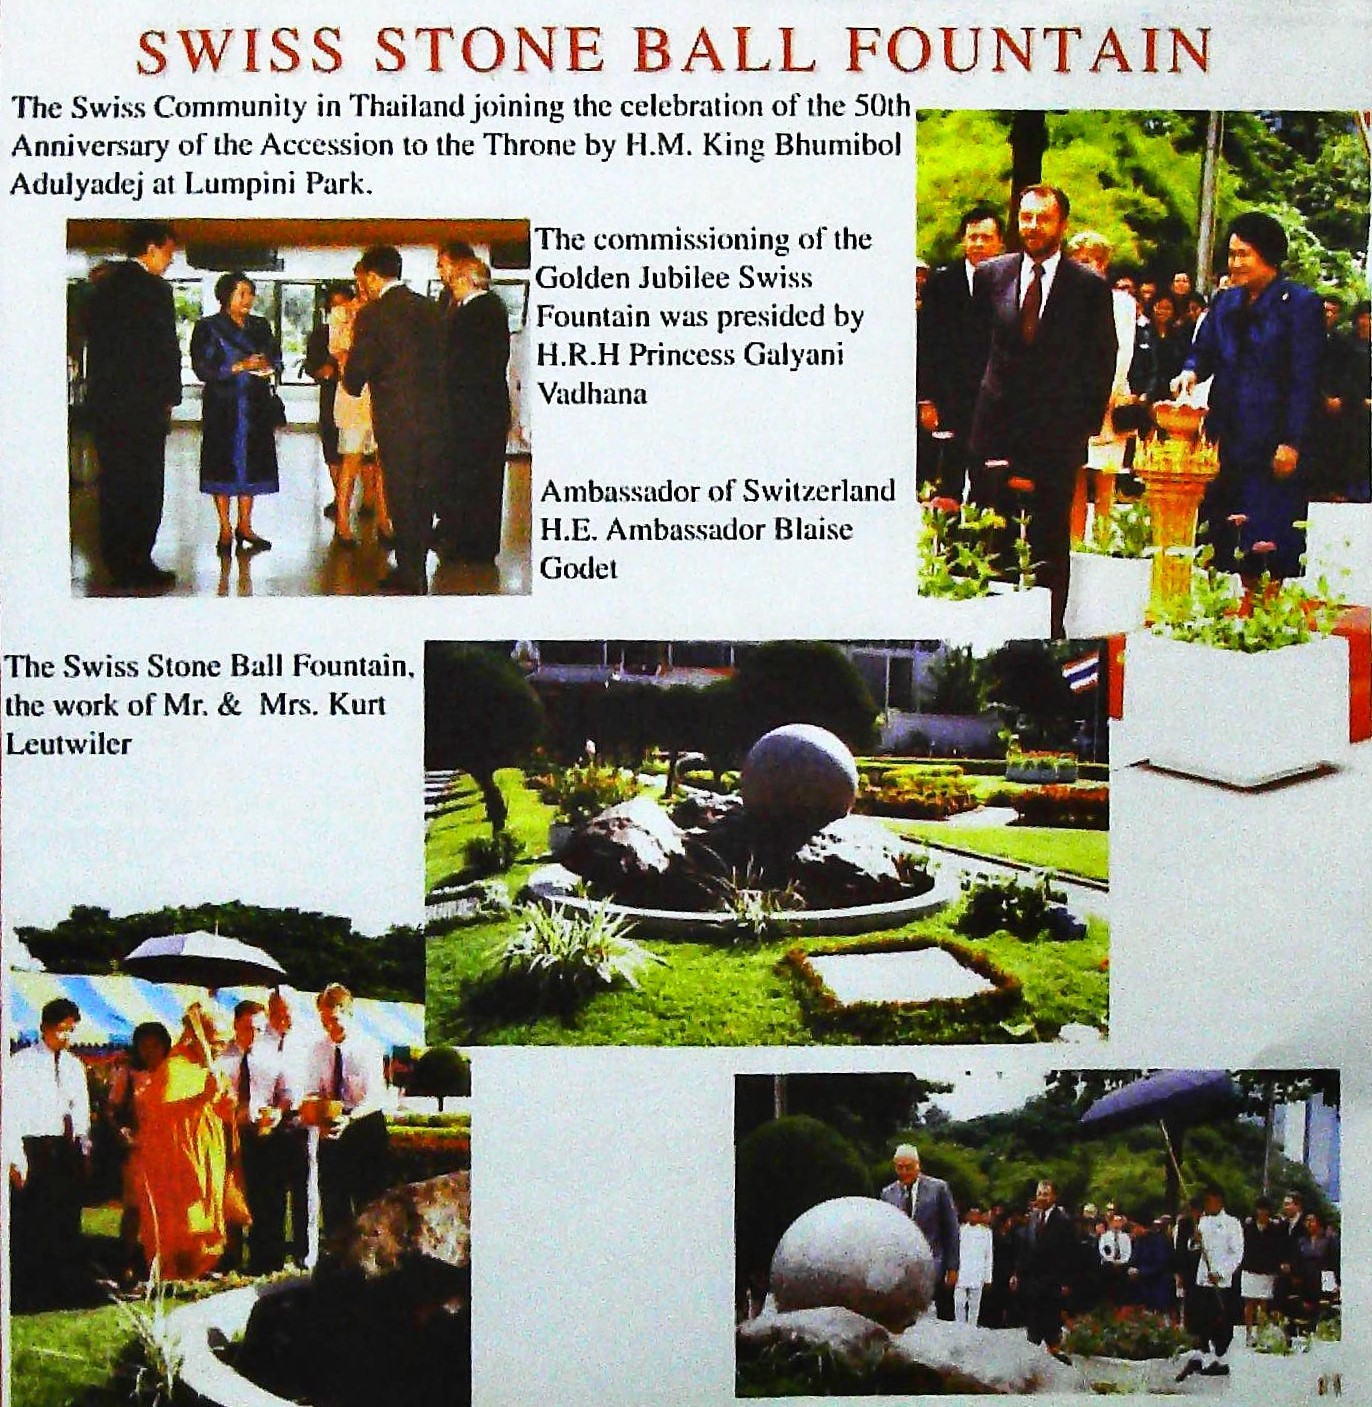 Swiss Stone Ball Fountain